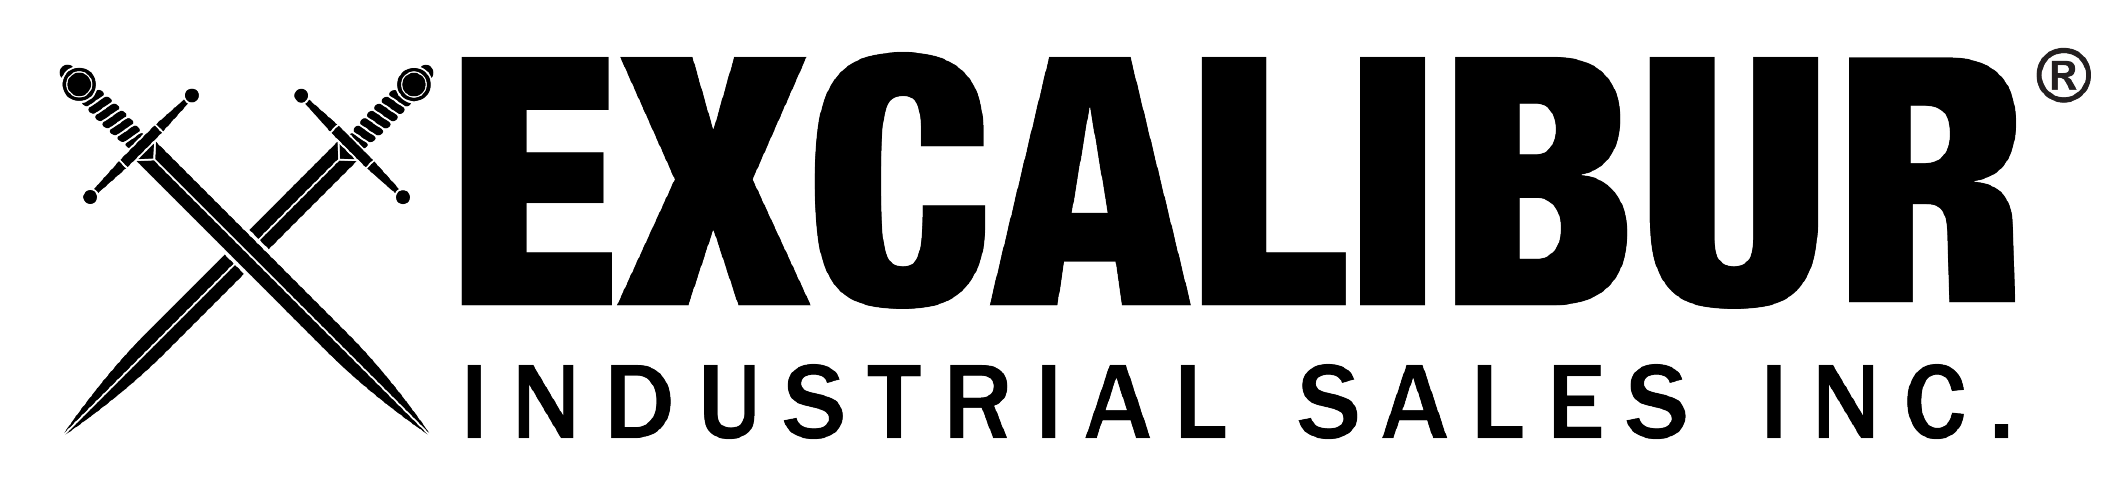 Excalibur Industrial Sales Inc.